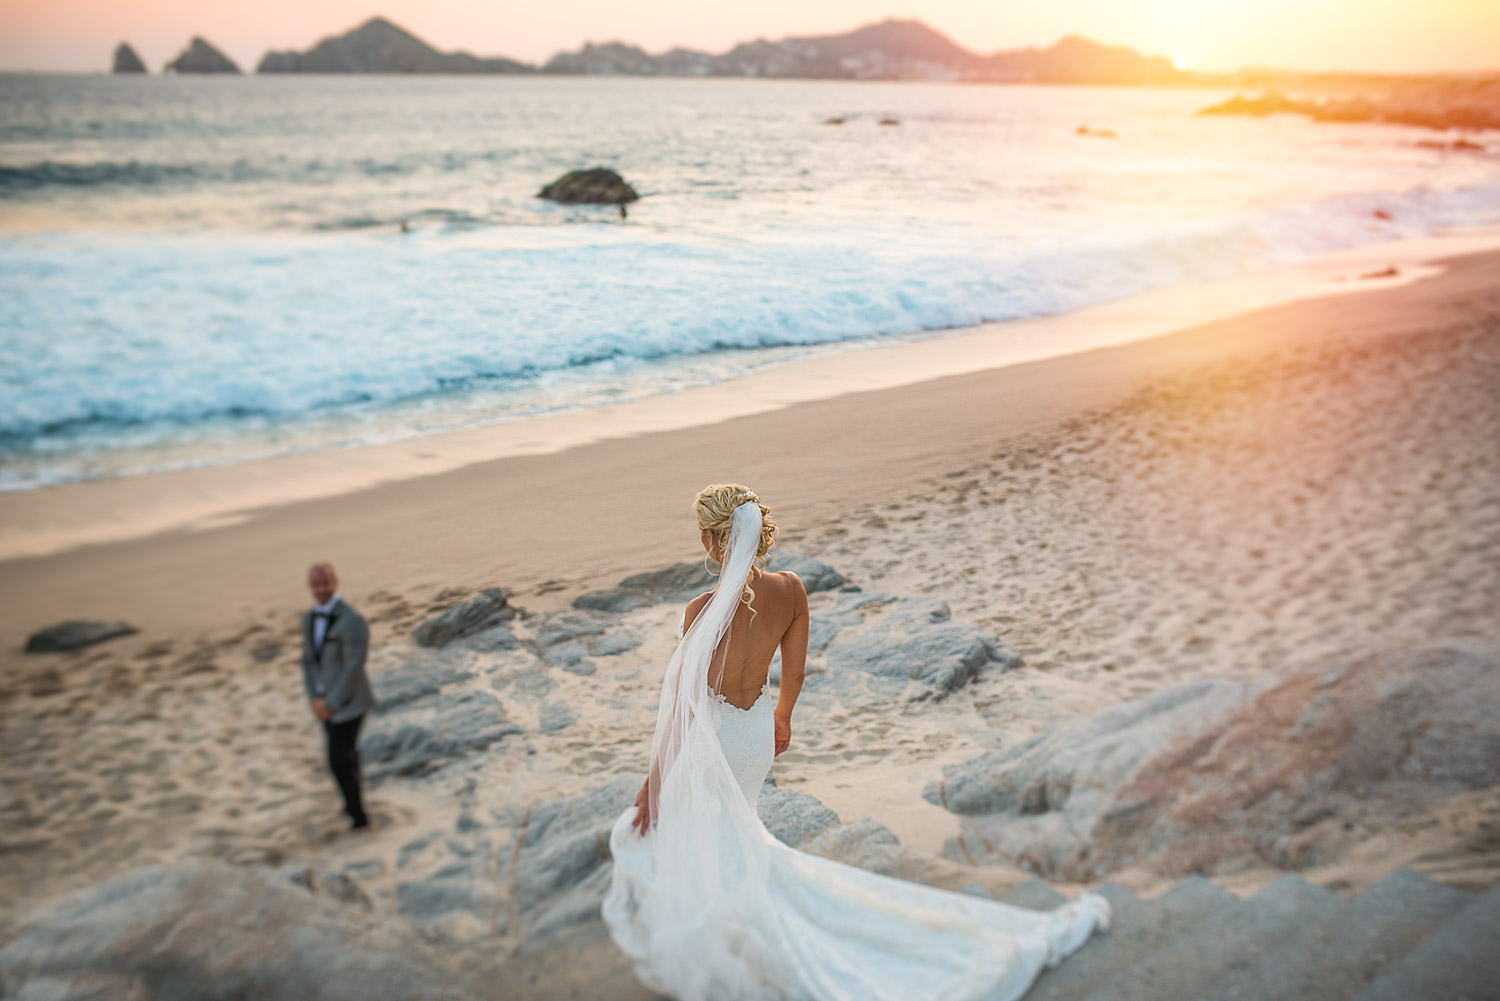 The Cape Los Cabos wedding, Mexico. Richard & Danielle